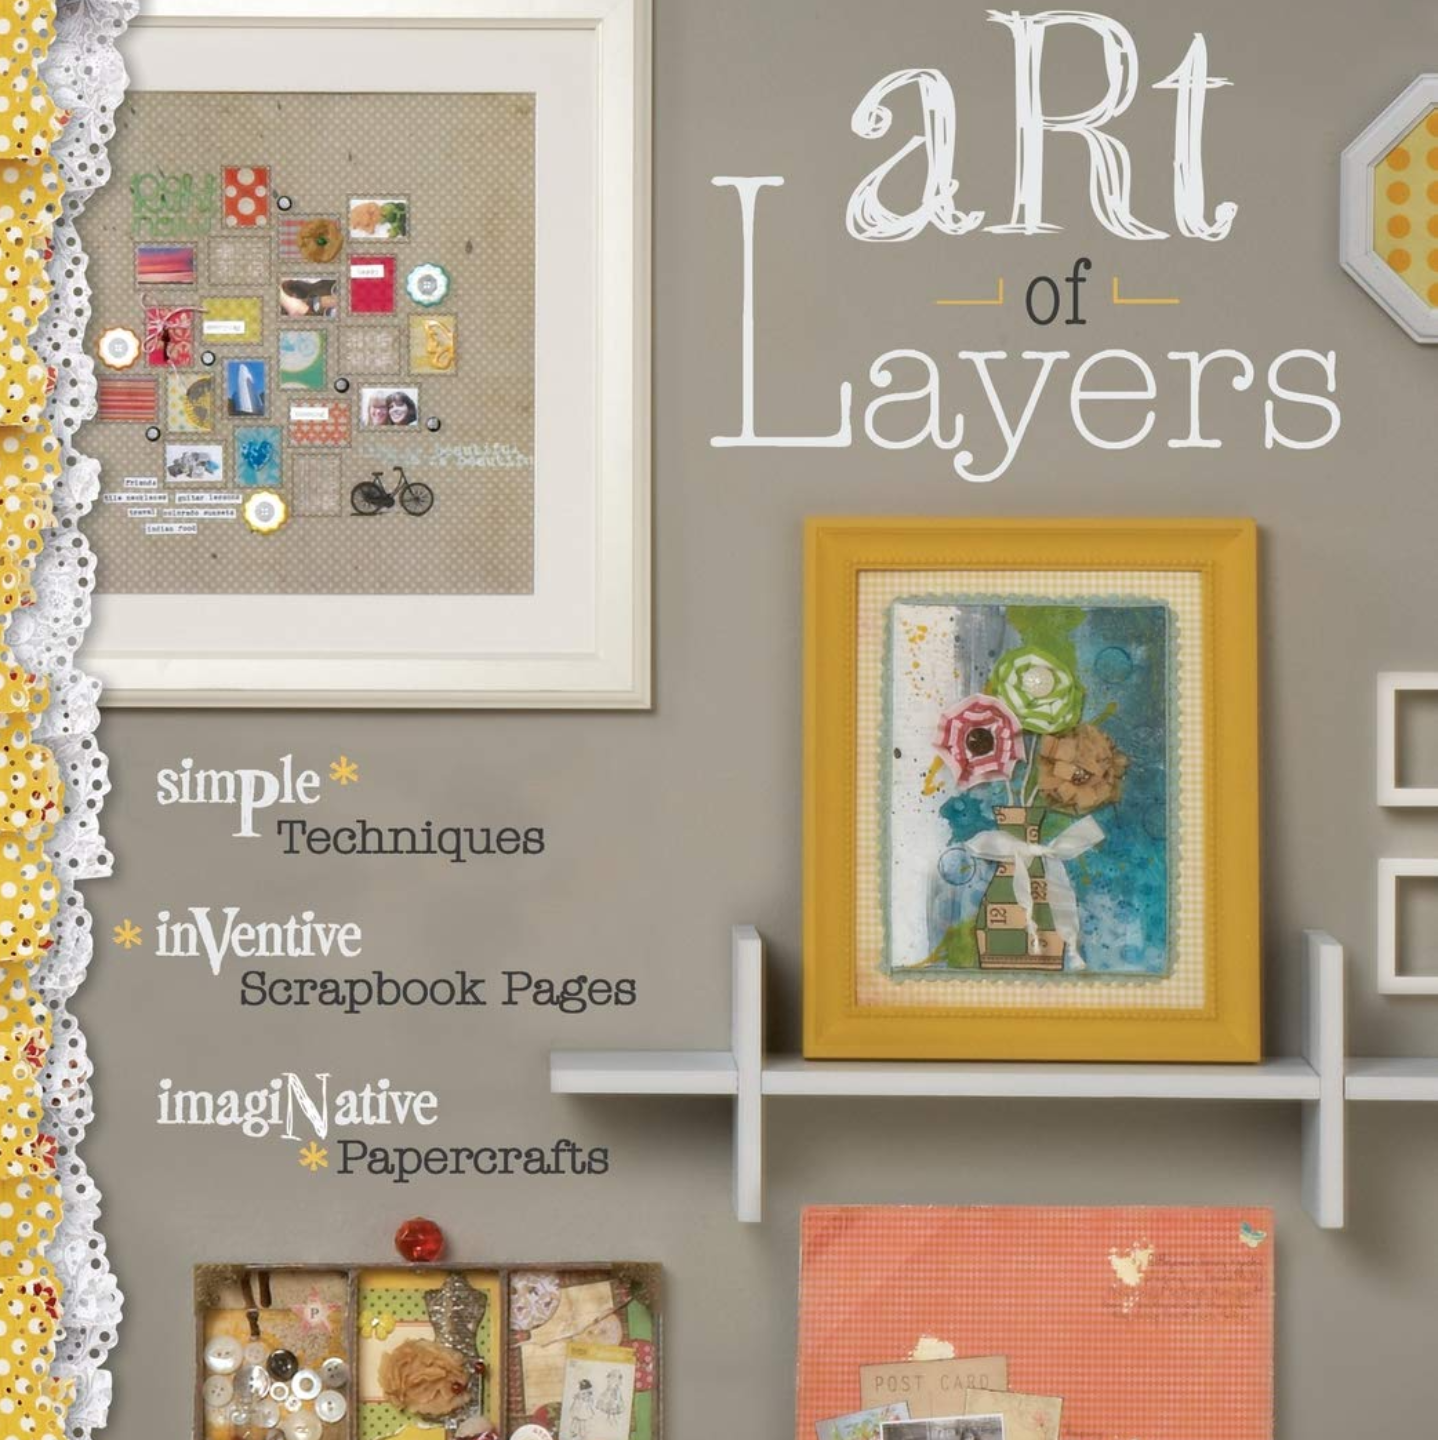 Art of Layers: Simple Techniques, Inventive Scrapbook Pages, Imaginative Papercrafts Paperback – March 22, 2012